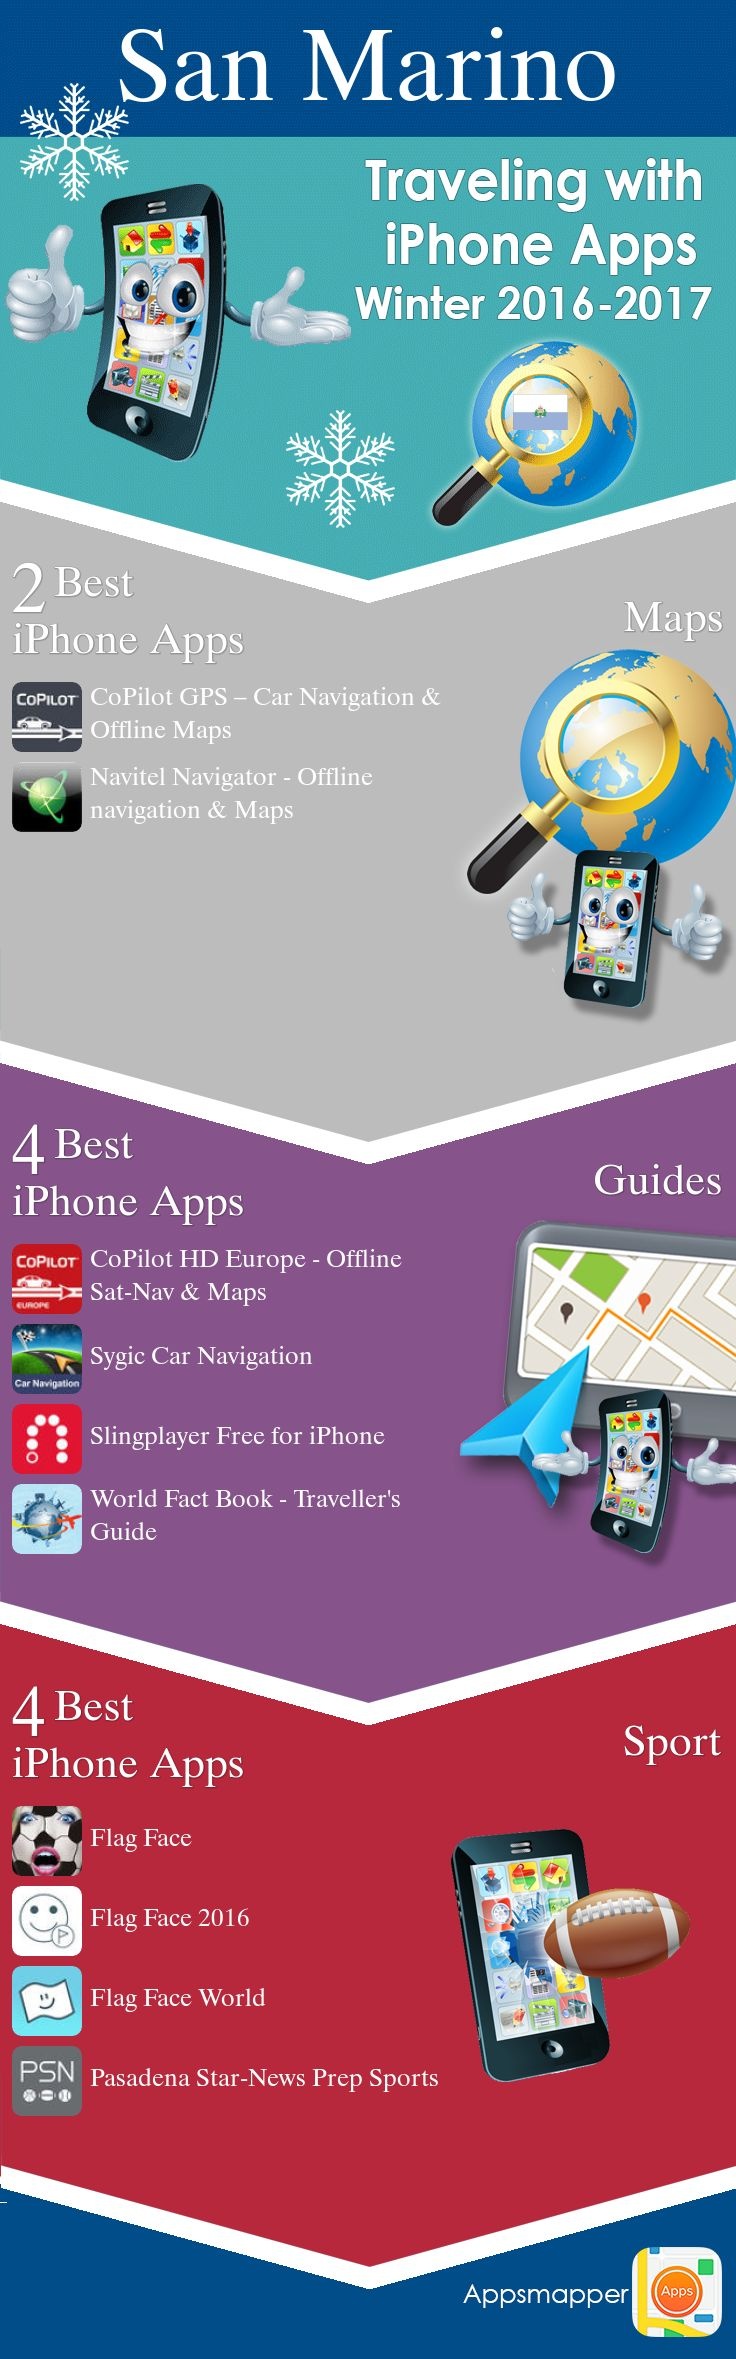 San Marino iPhone apps: Travel Guides, Maps, Transportation, Biking, Museums, Parking, Sport and apps for Students.